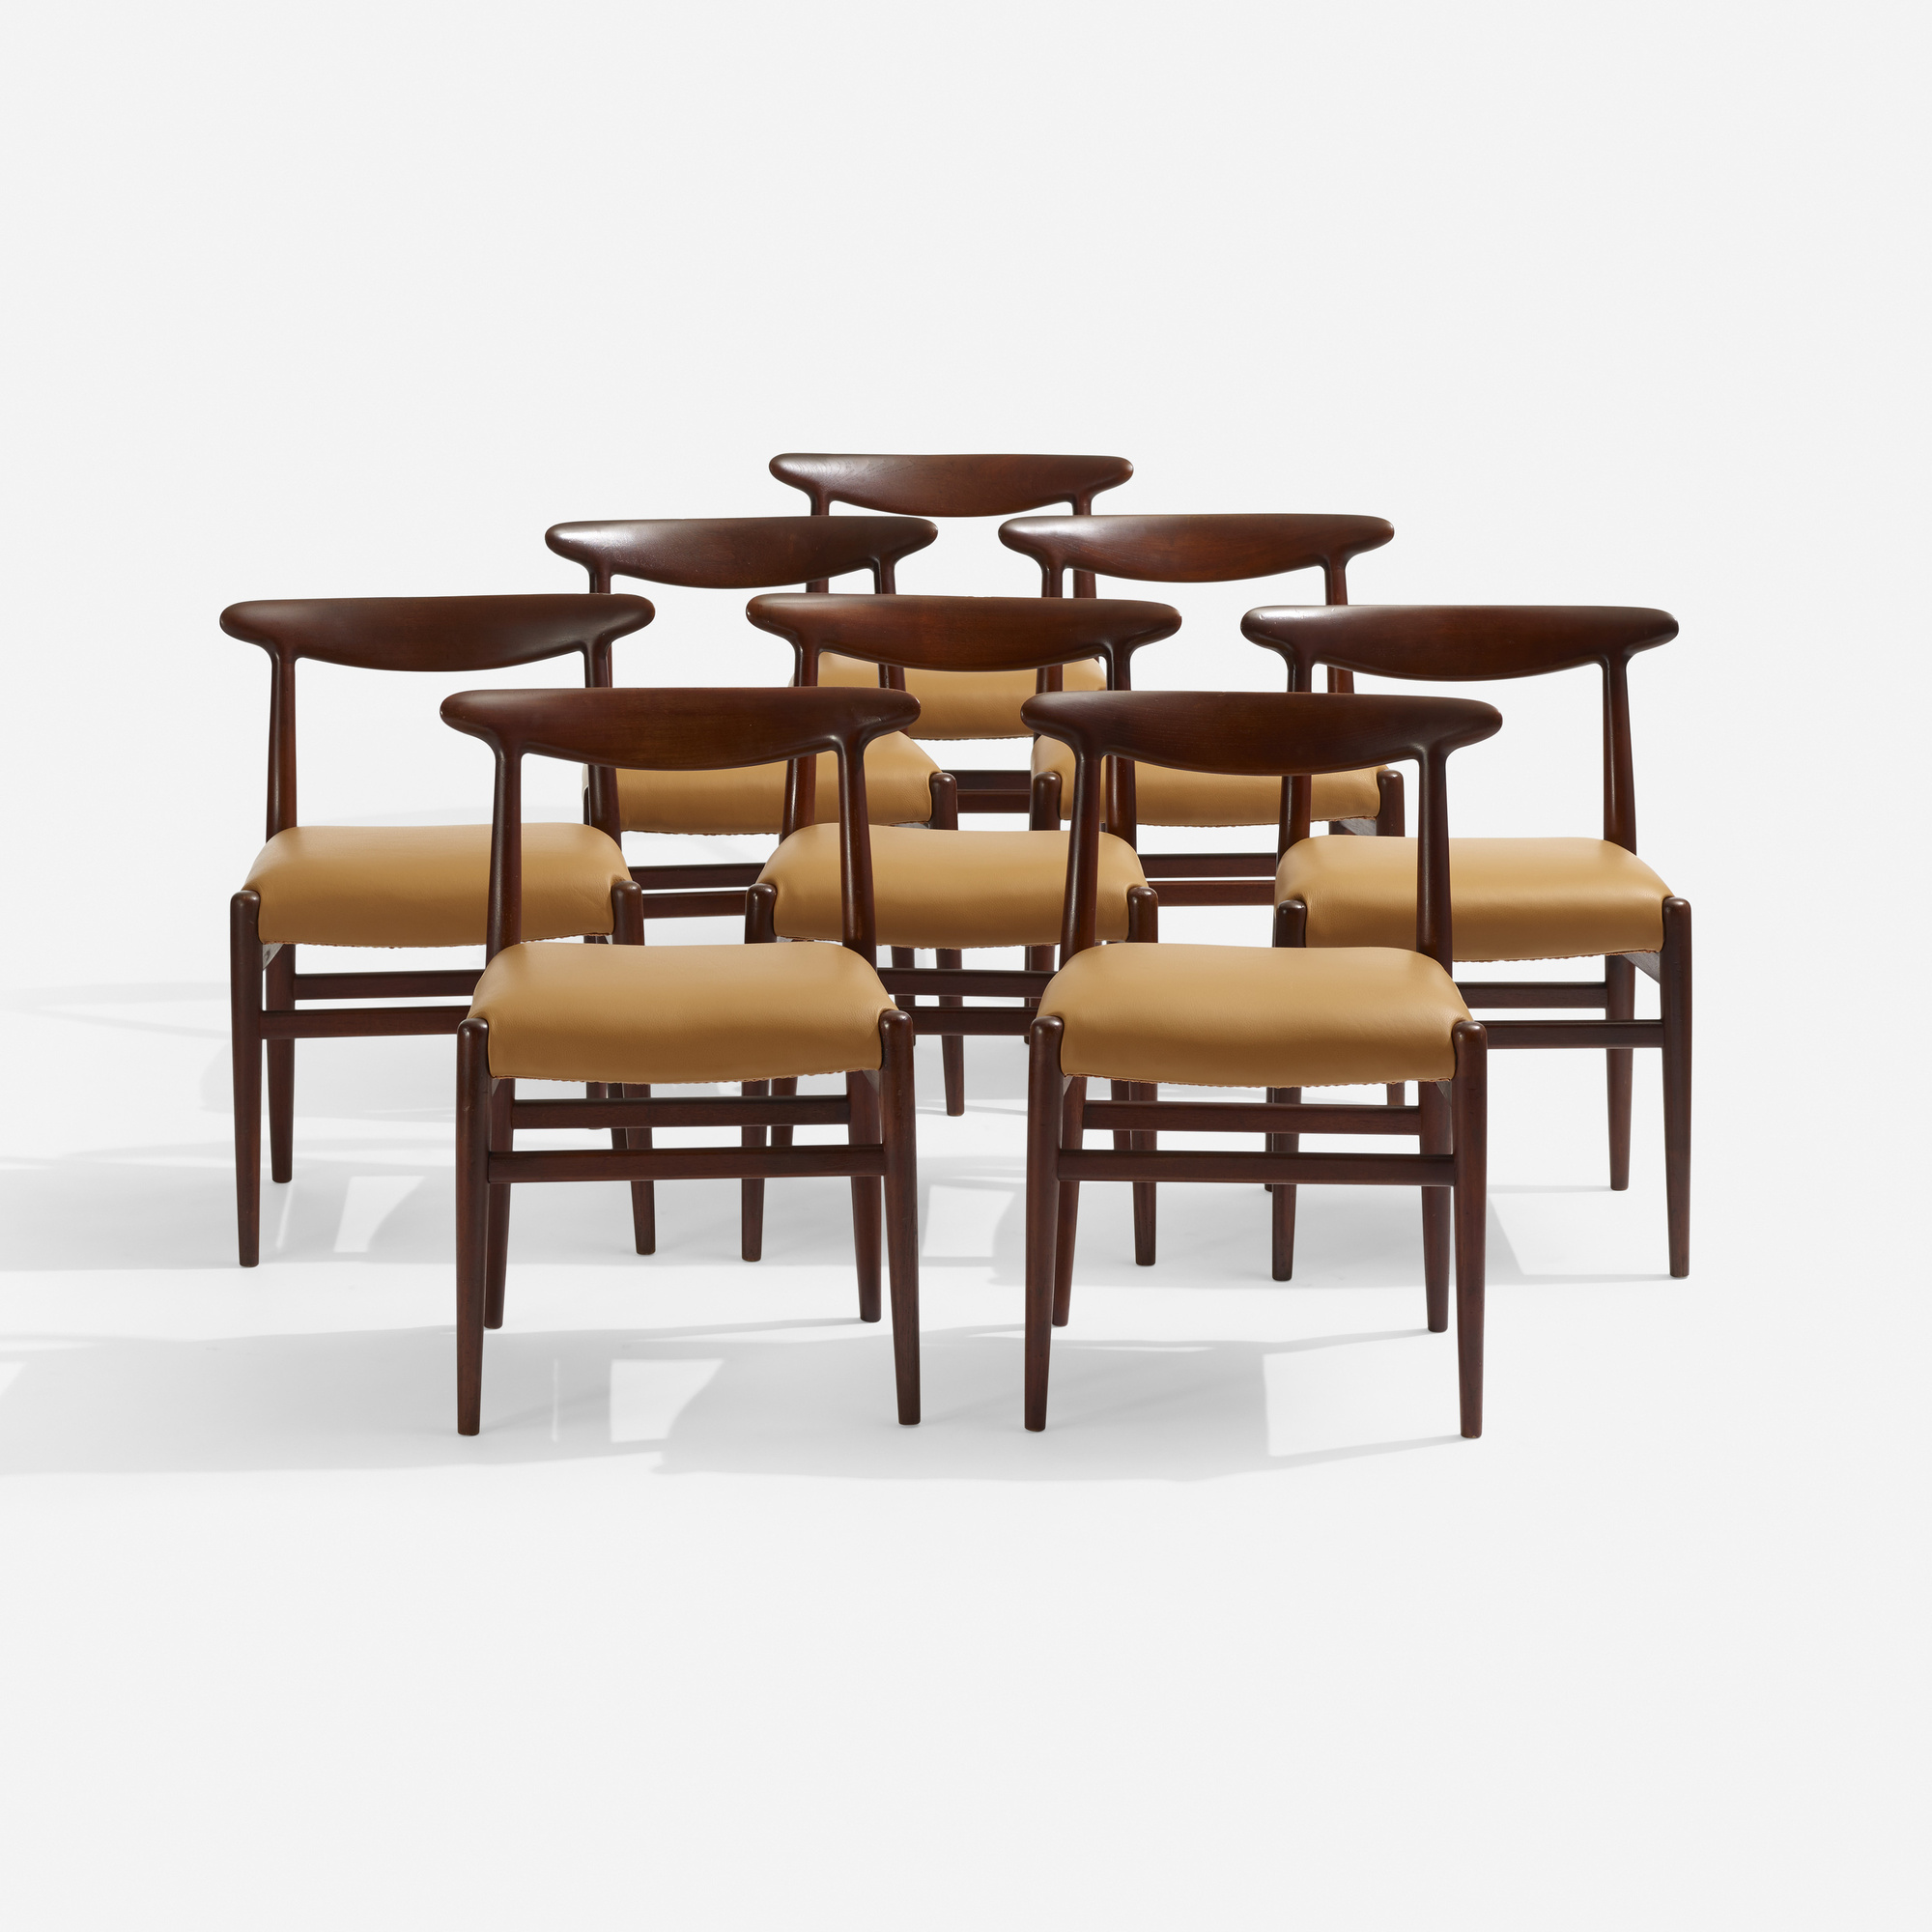 281: Hans J. Wegner / dining chairs, set of eight (1 of 3)